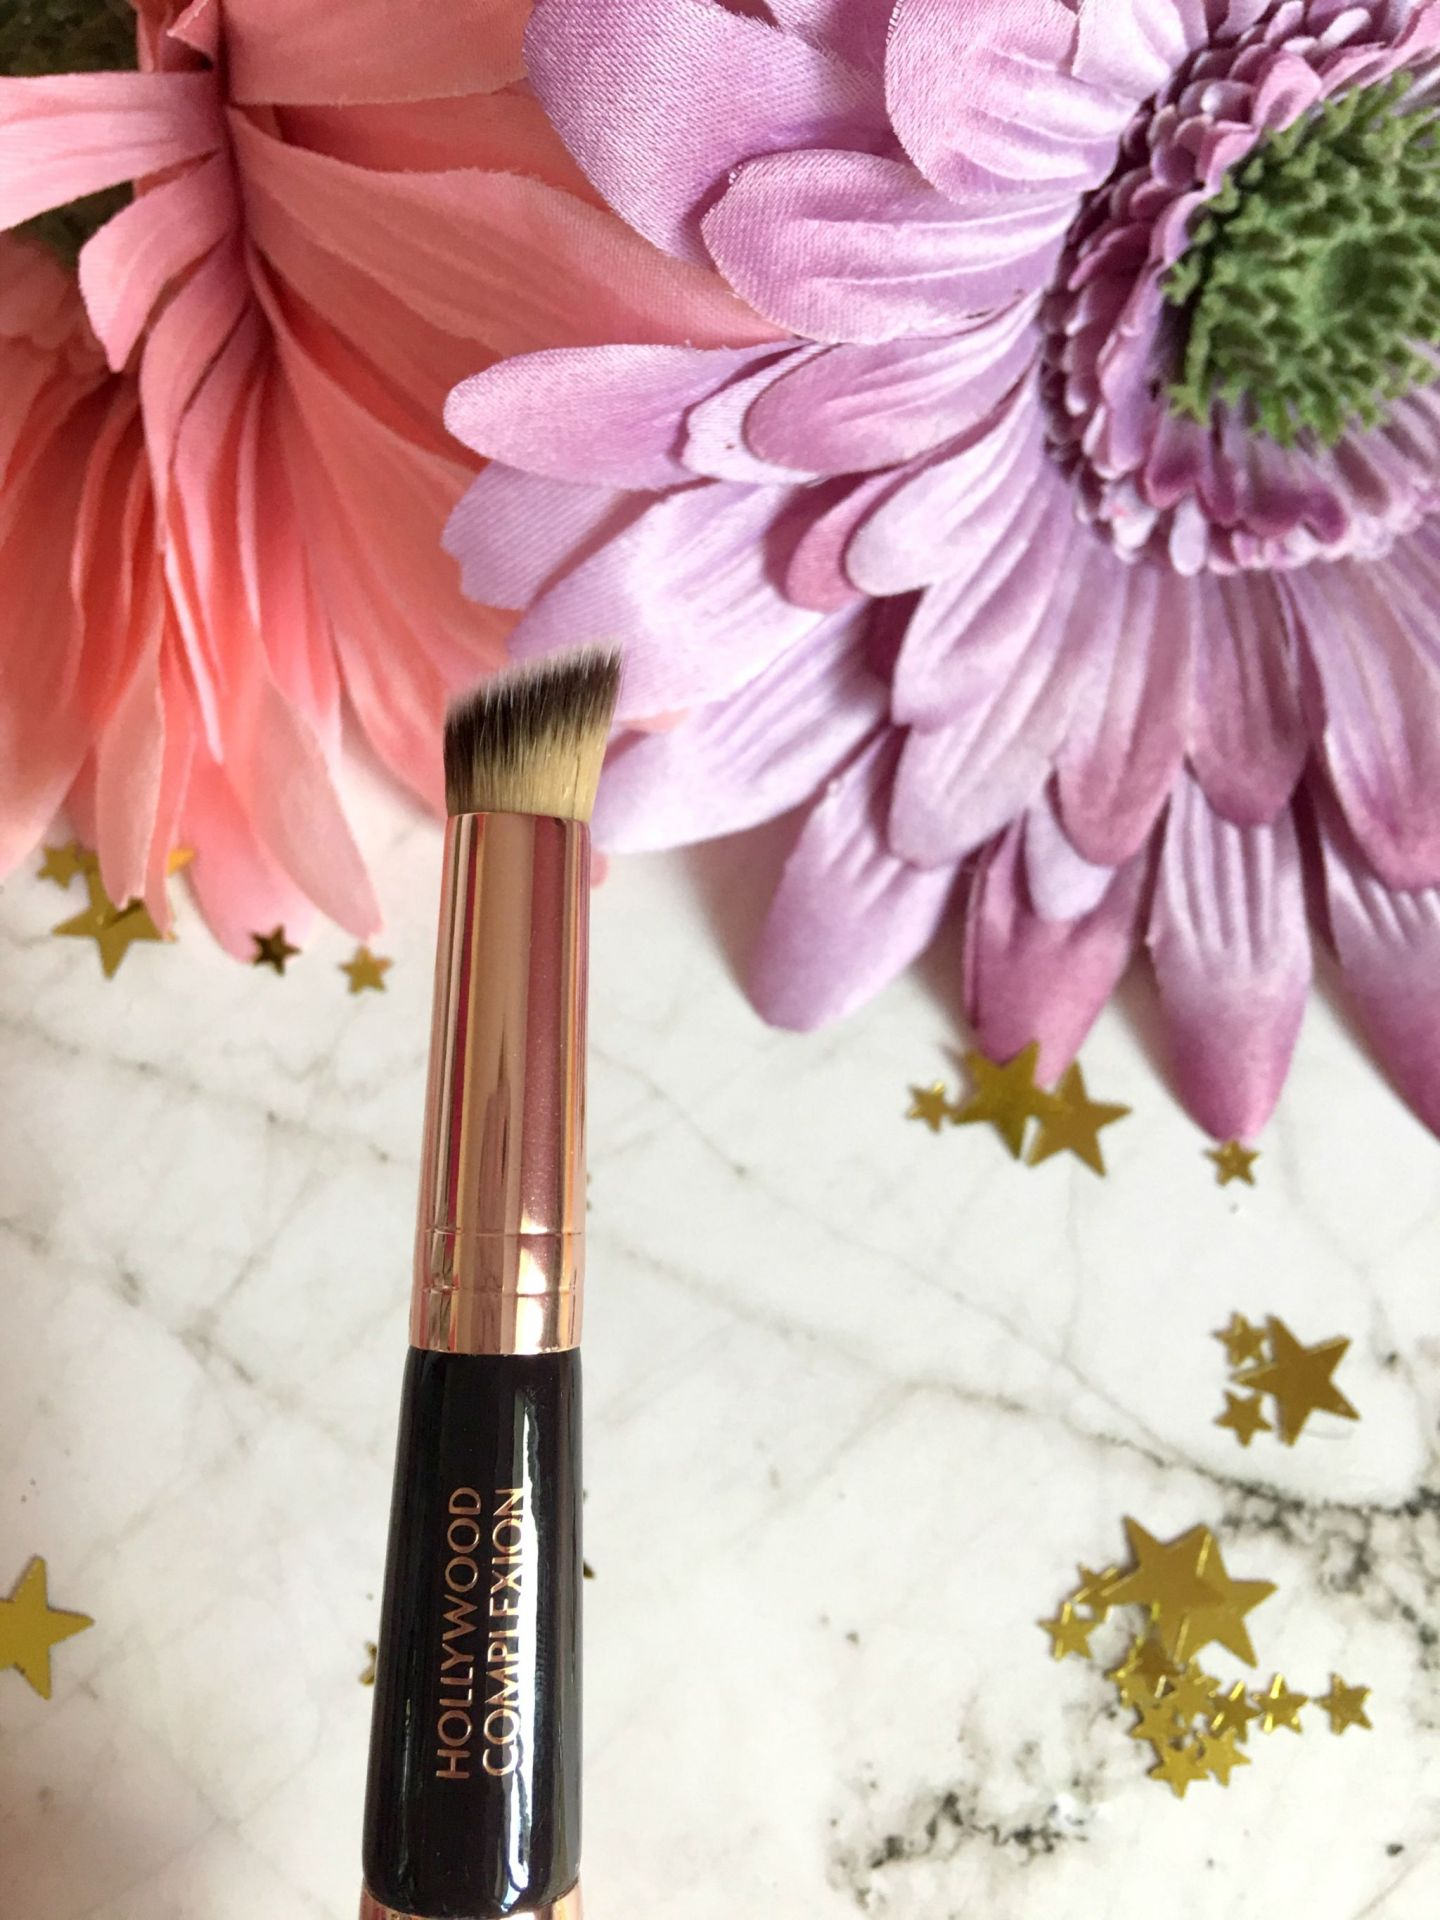 Charlotte Tilbury Hollywood Beauty Wands Musings of a Makeup Junkie (9)